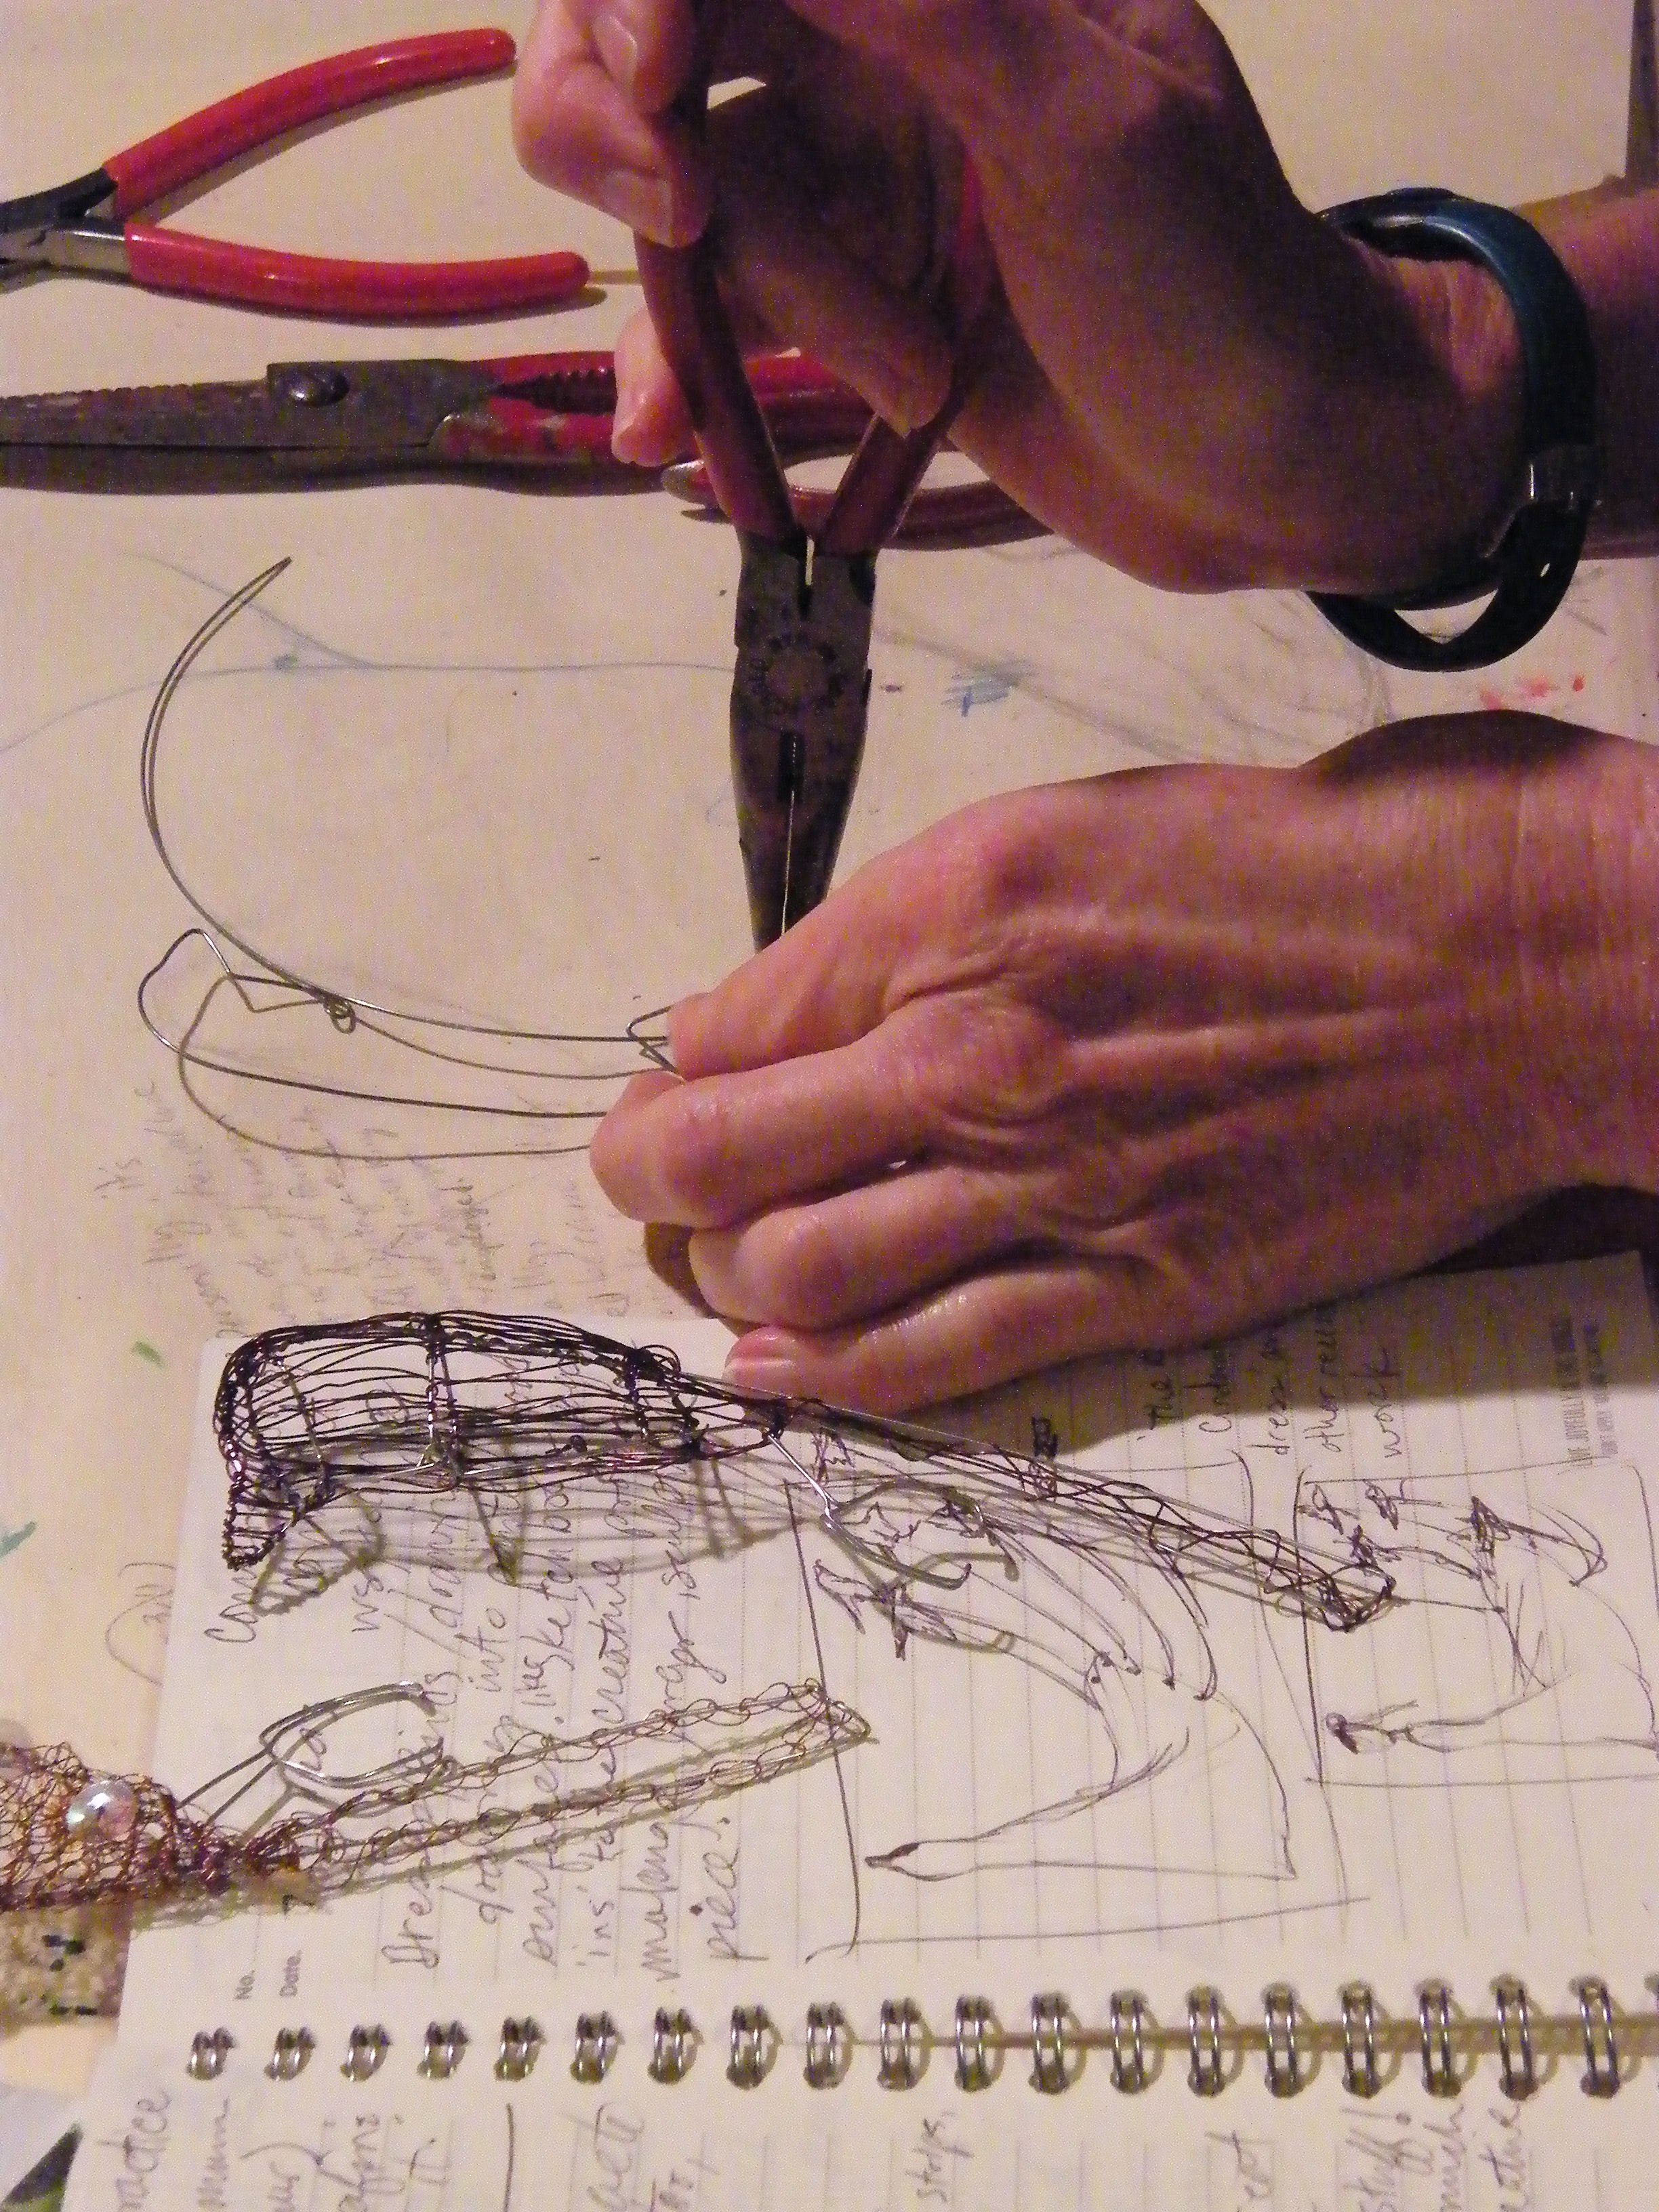 Building a better bird with wire, weaving.